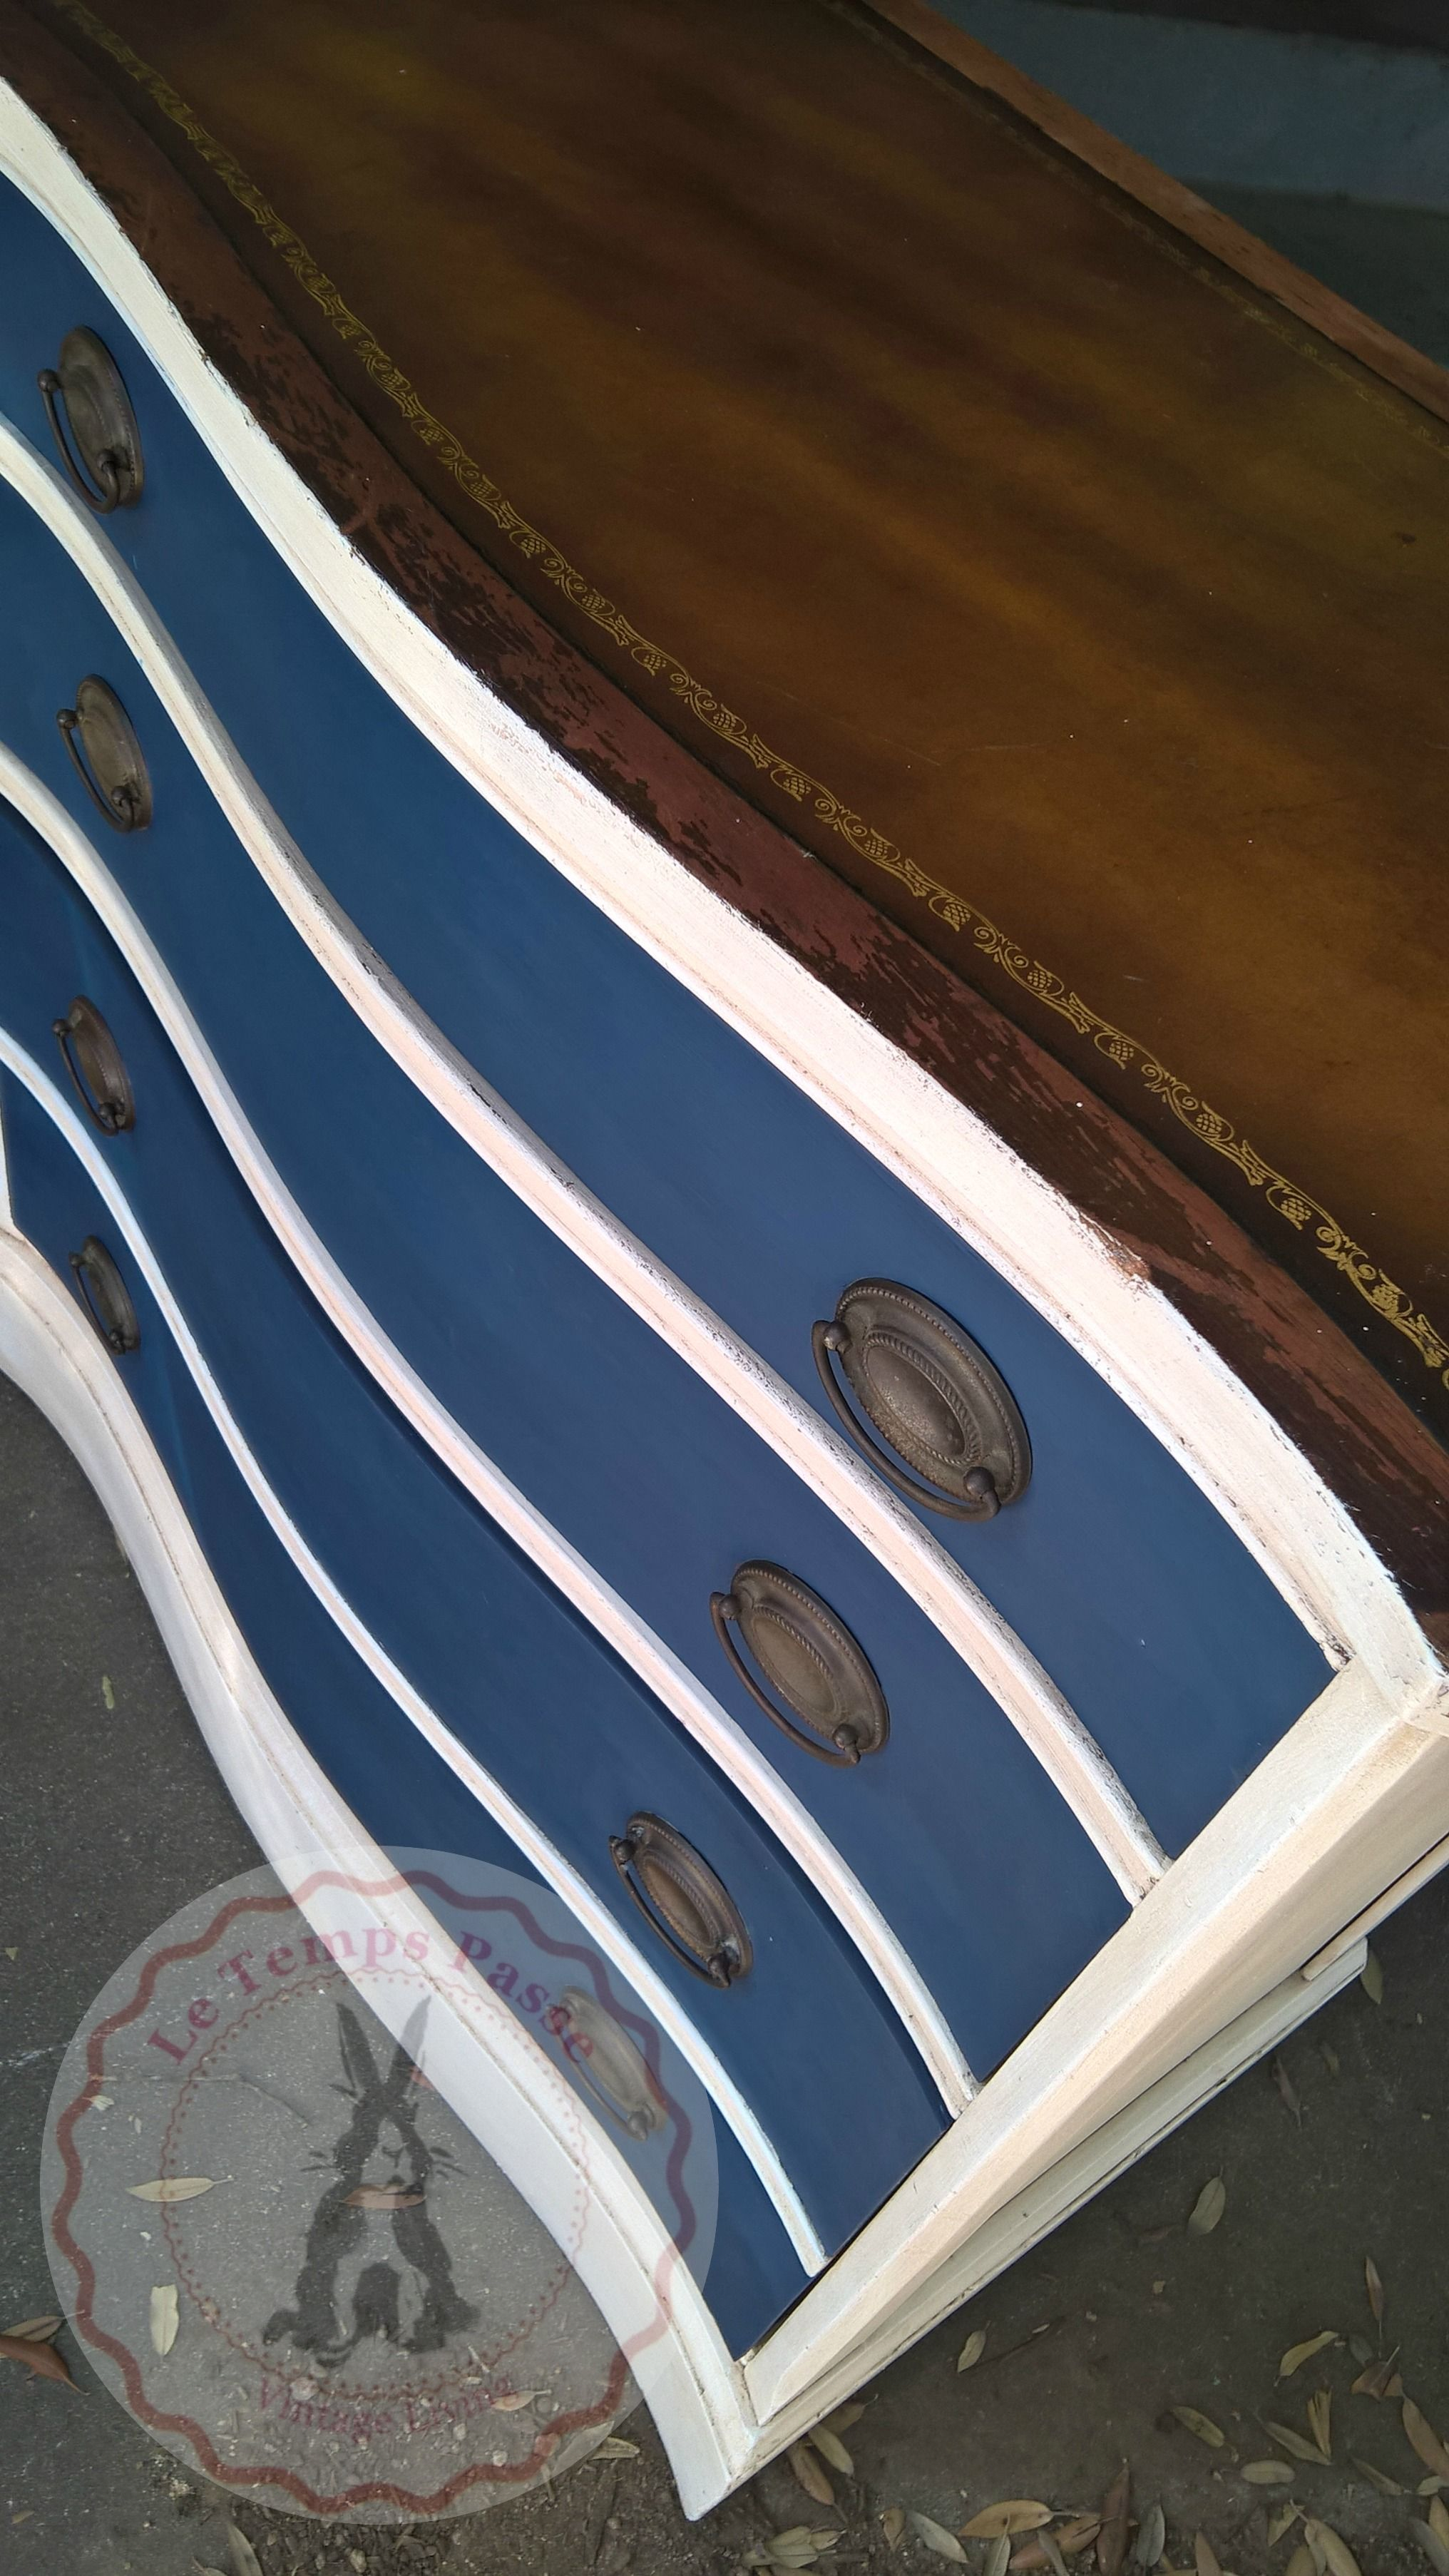 Vintage Brown Dresser Painted White With Navy Blue On Drawers Top Original Leather White Dresser Diy Brown Dresser Navy Blue Dresser